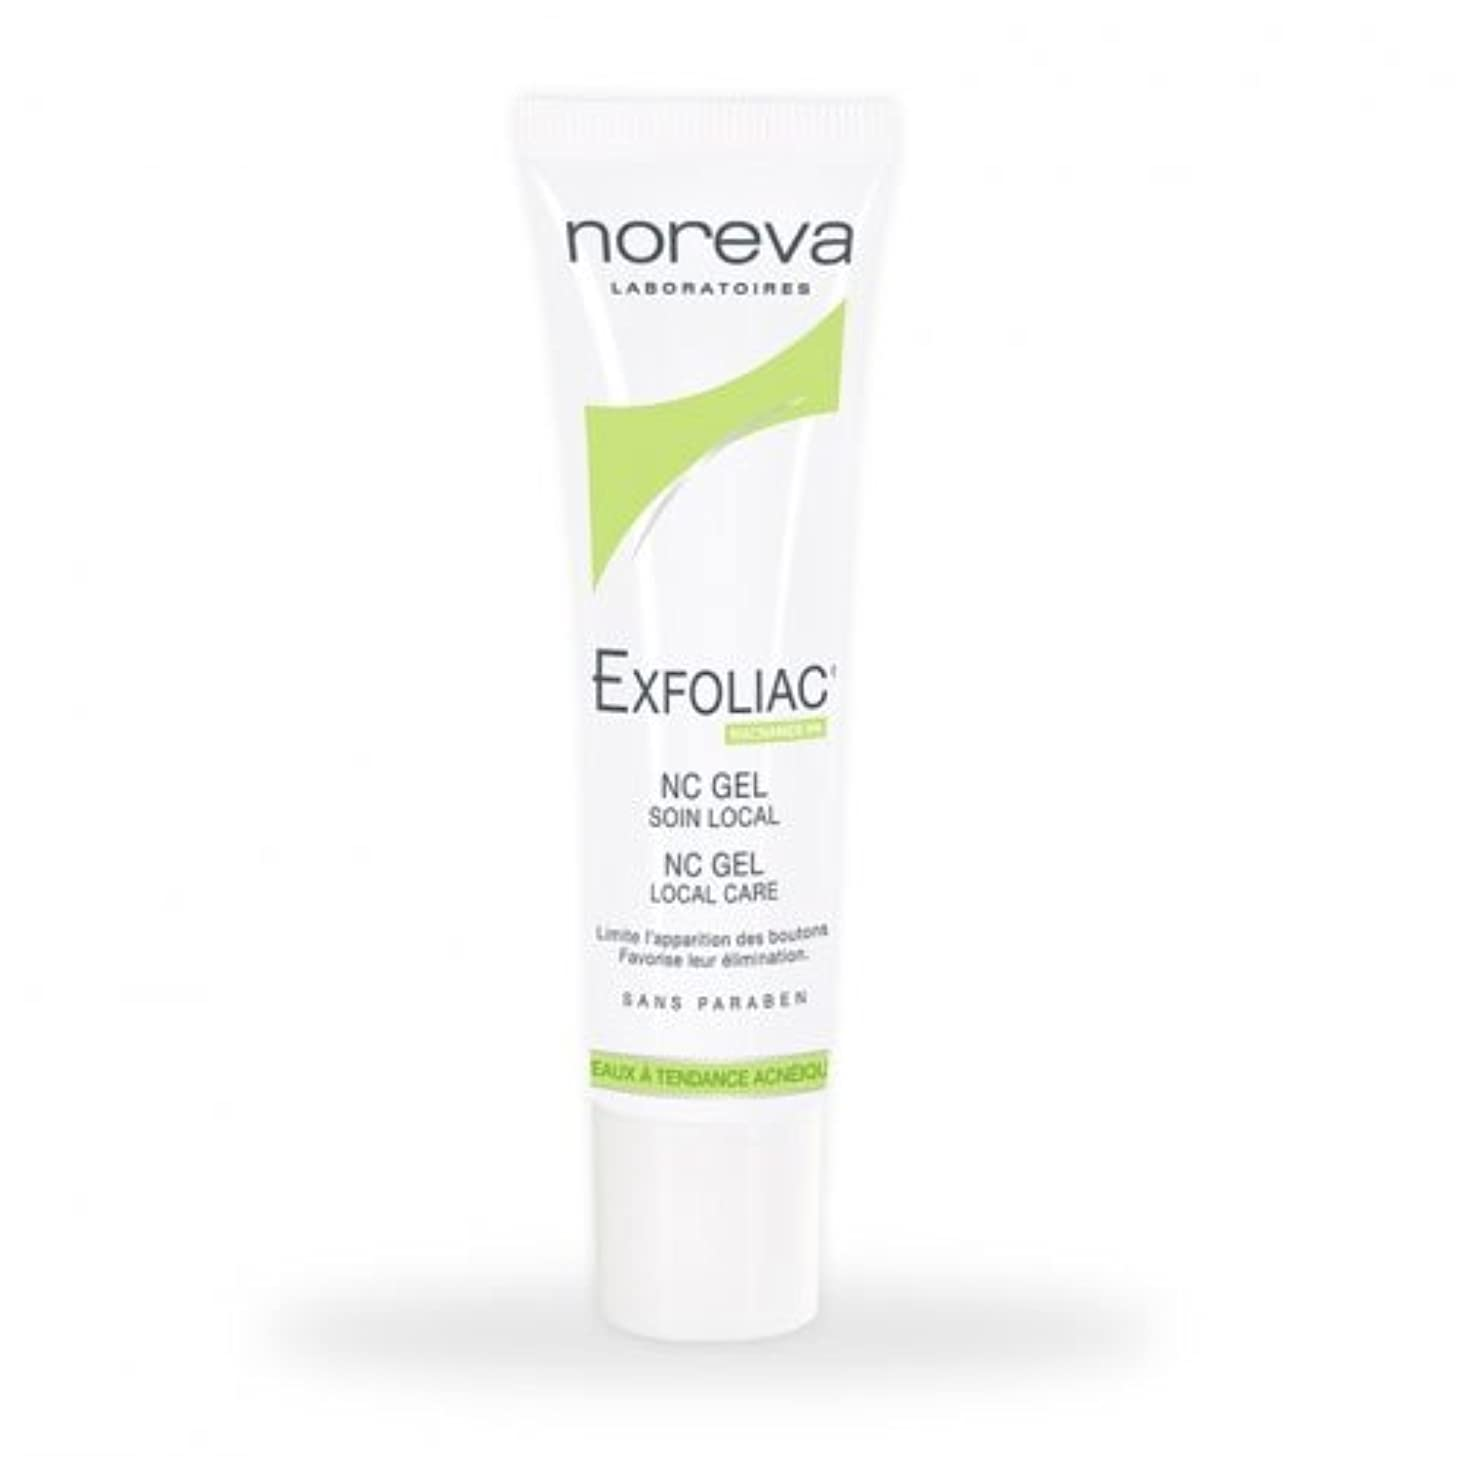 雇用水差し手Noreva Exfoliac Nc Gel Local Care 30ml [並行輸入品]